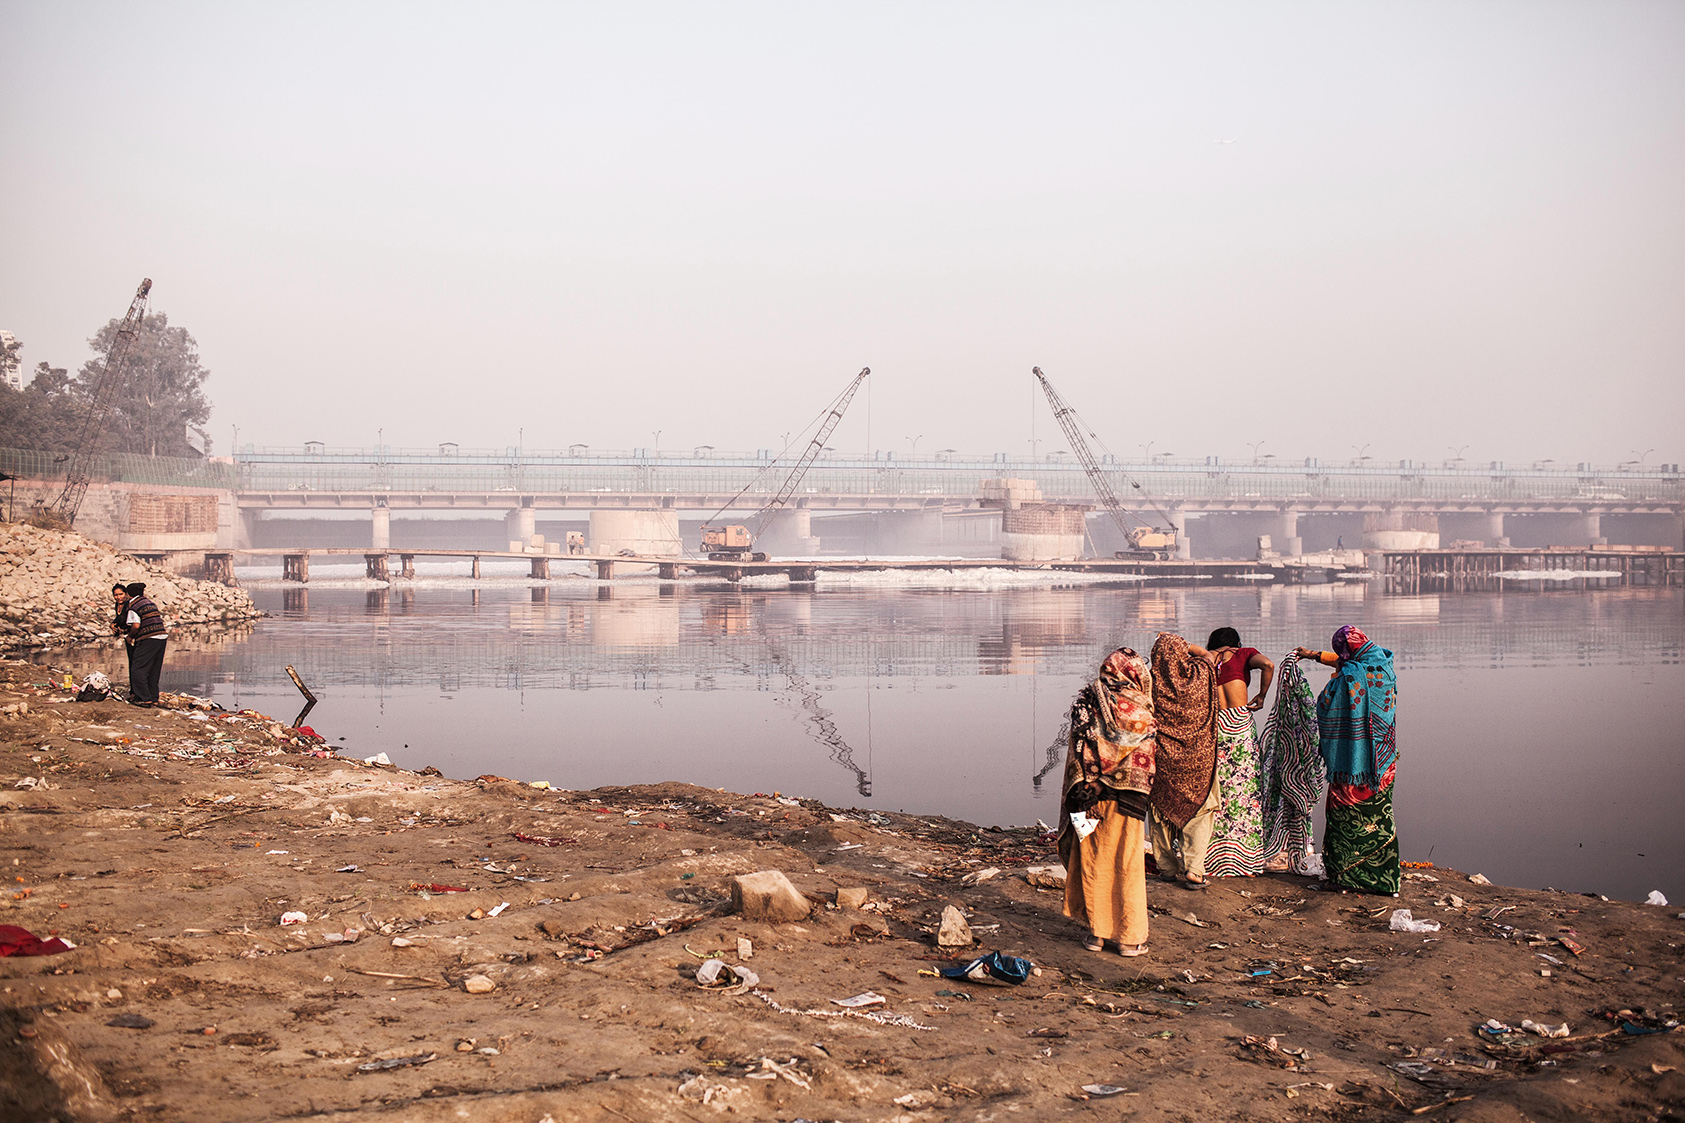 Hindus traditionally bath rivers to offer their prayers as part of many ceremonies